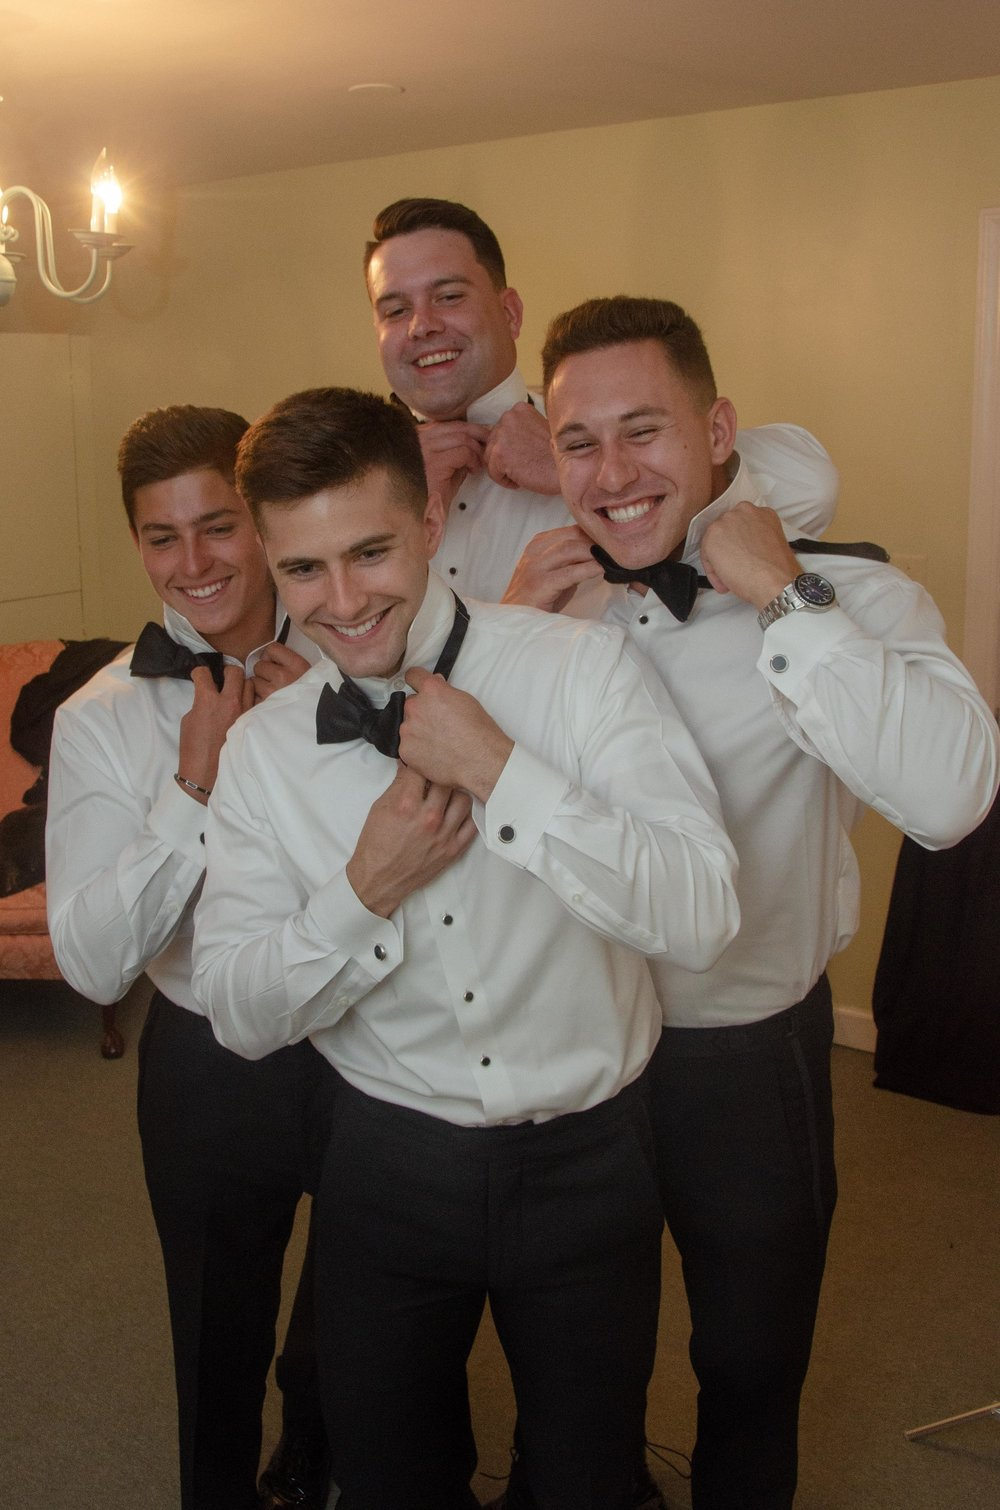 Groomsmen - Getting Ready